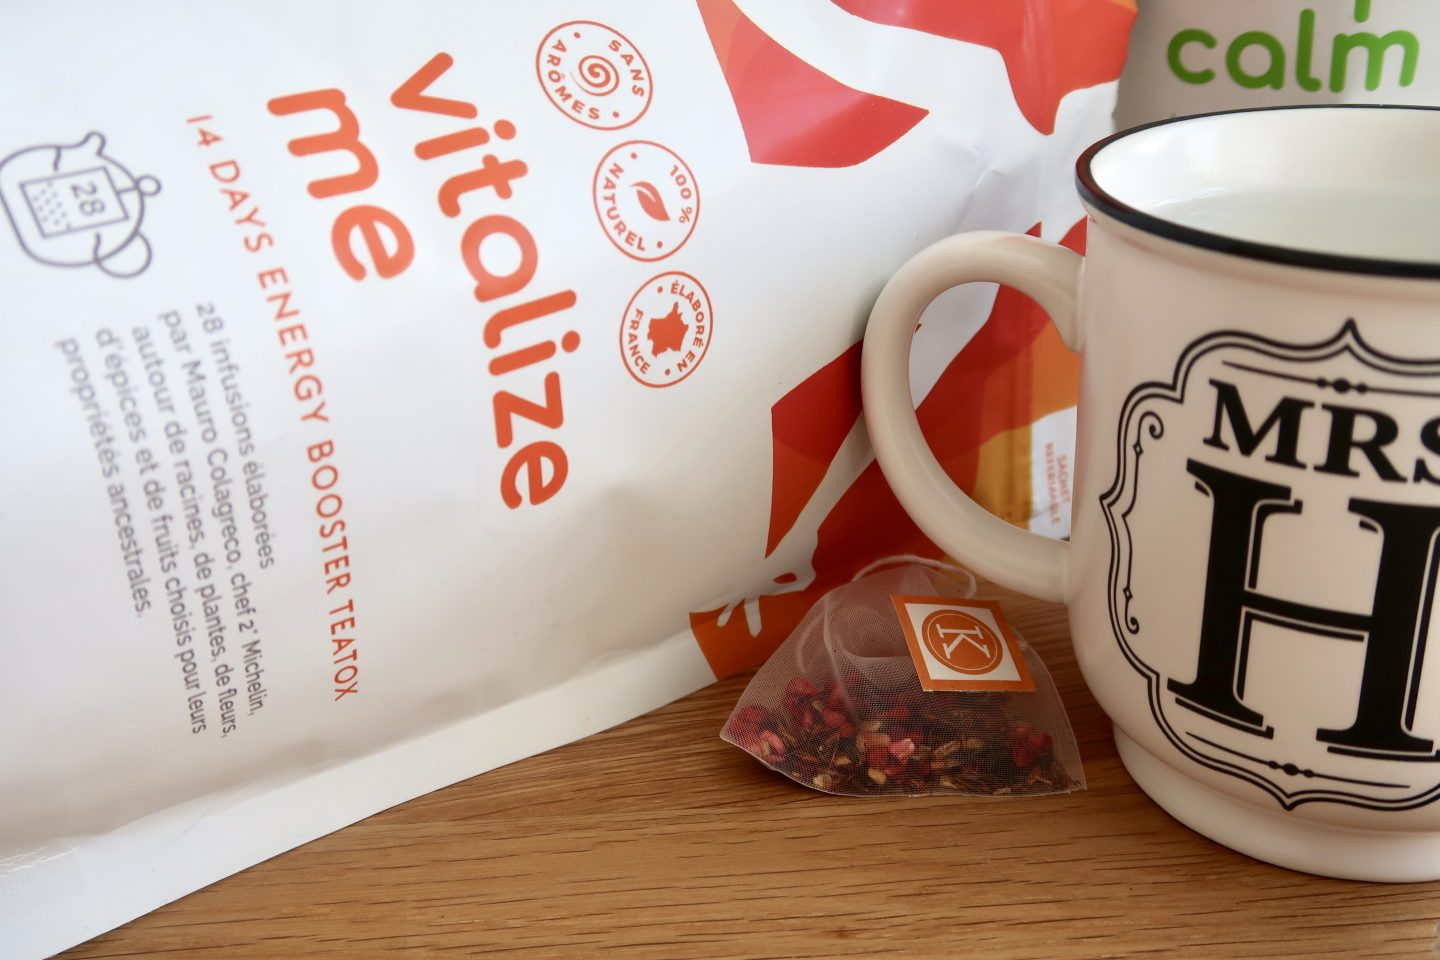 """A mug and tea bag next to a package that says """"vitalize me"""" on it"""